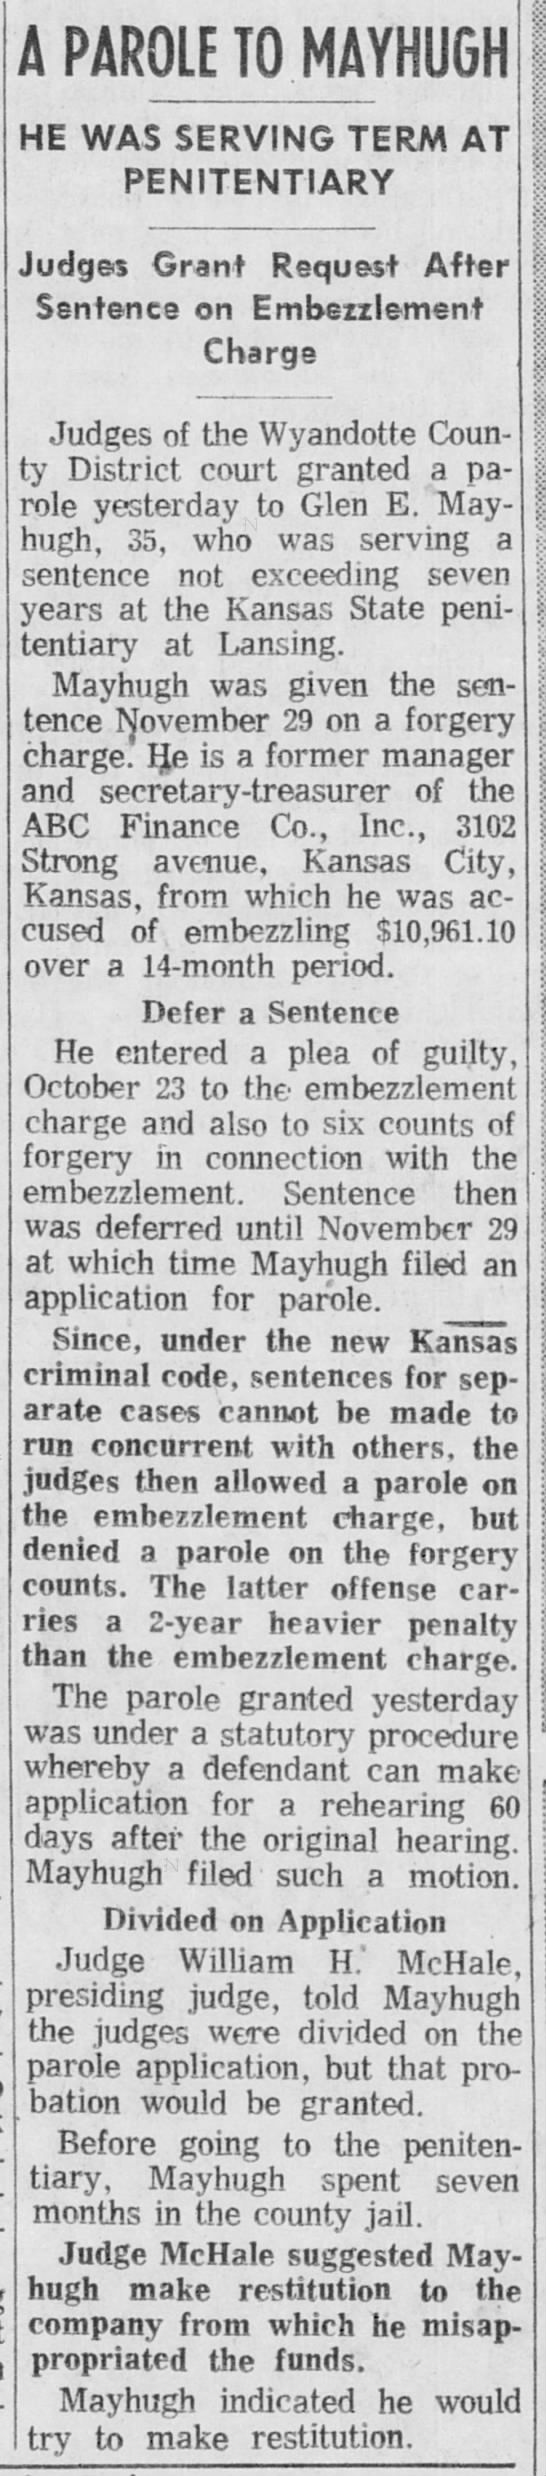 Clipping from The Kansas City Times on Newspapers.com